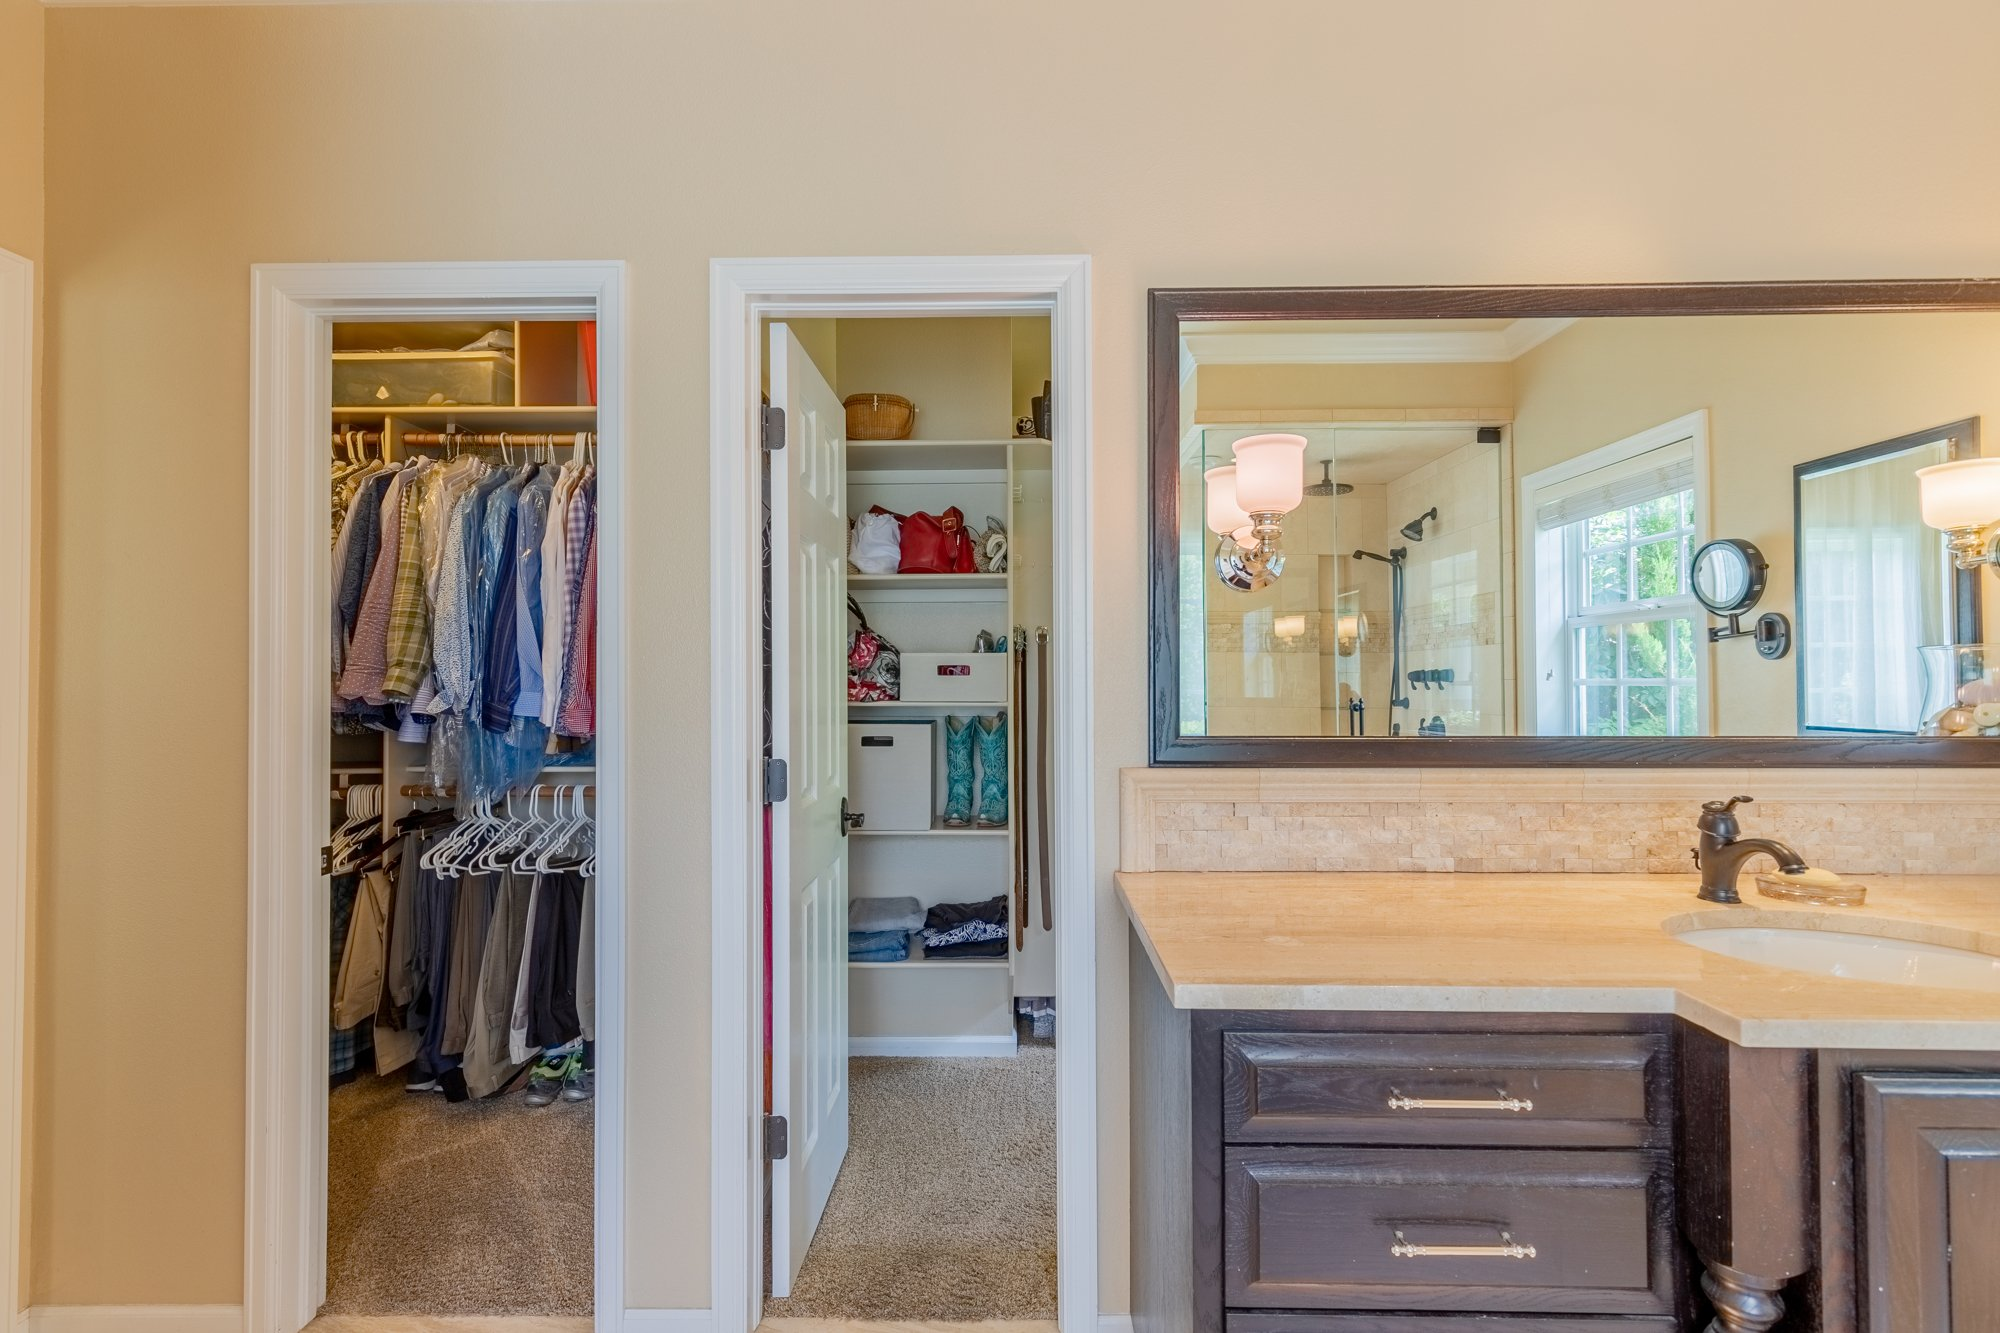 Master Bathroom with Closet - 2049 Brook Way Montrose, Co 81403 - Atha Team Luxury Real Estate